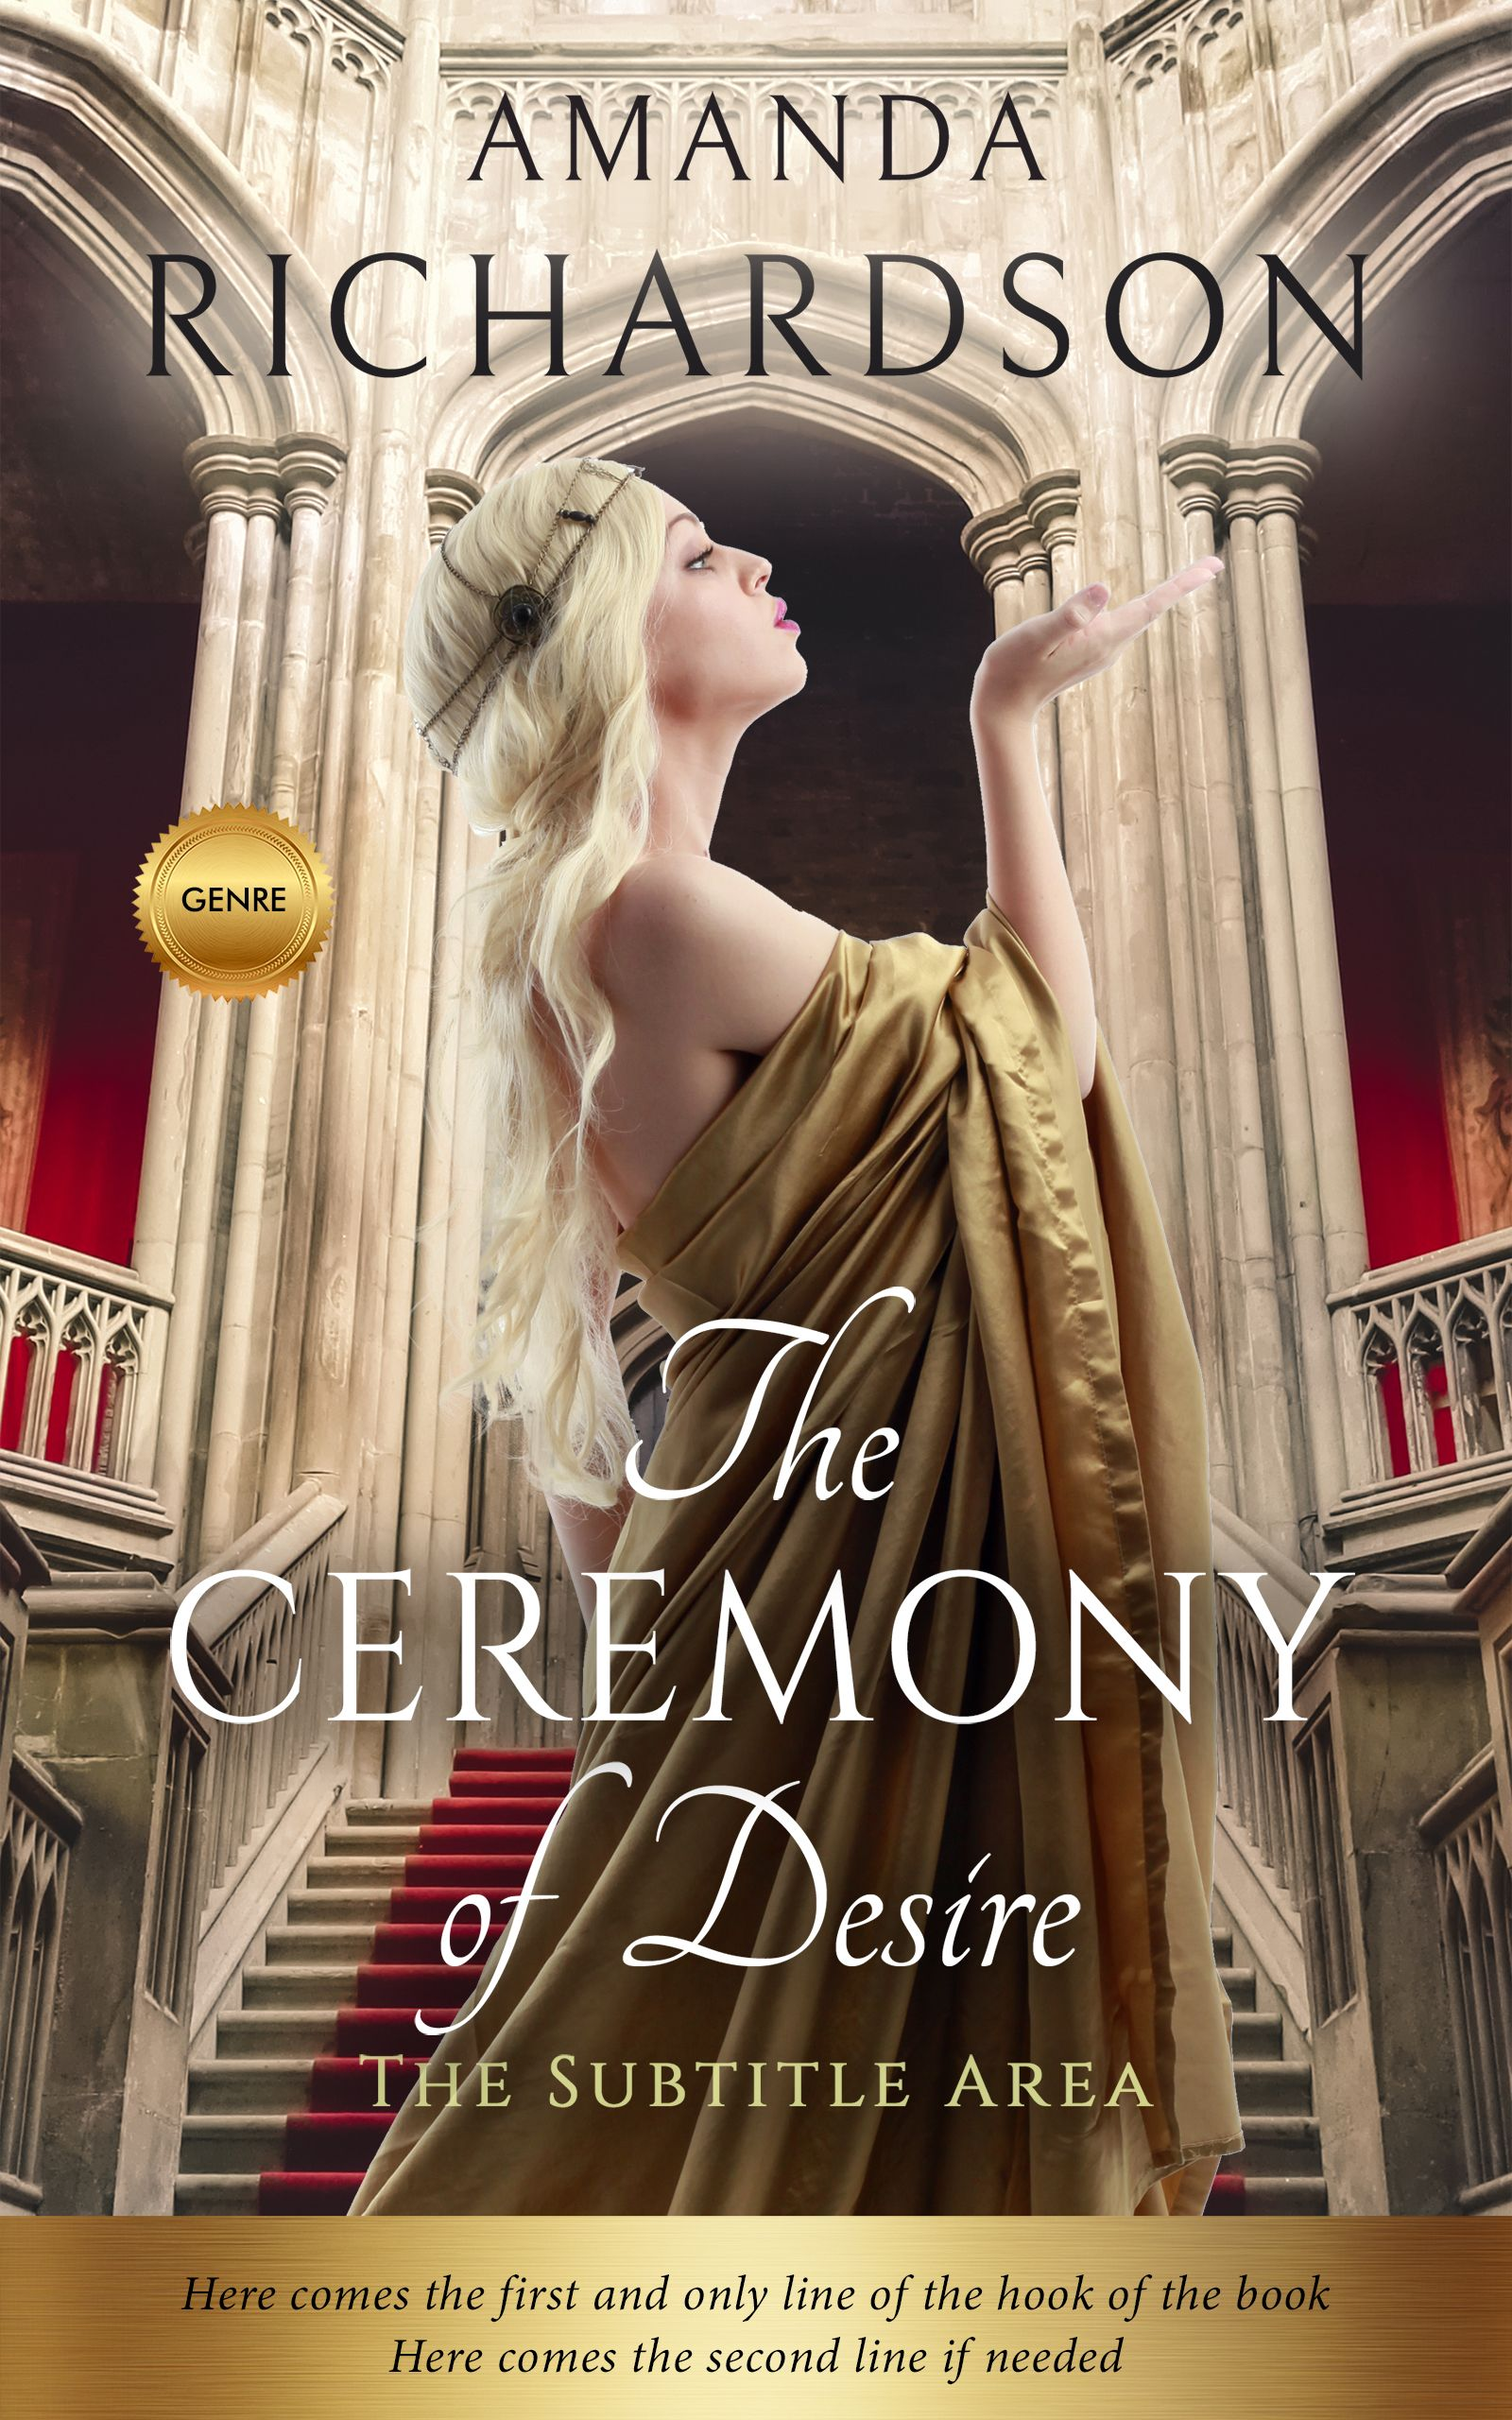 Mongoose new fiction royal romance premade book cover